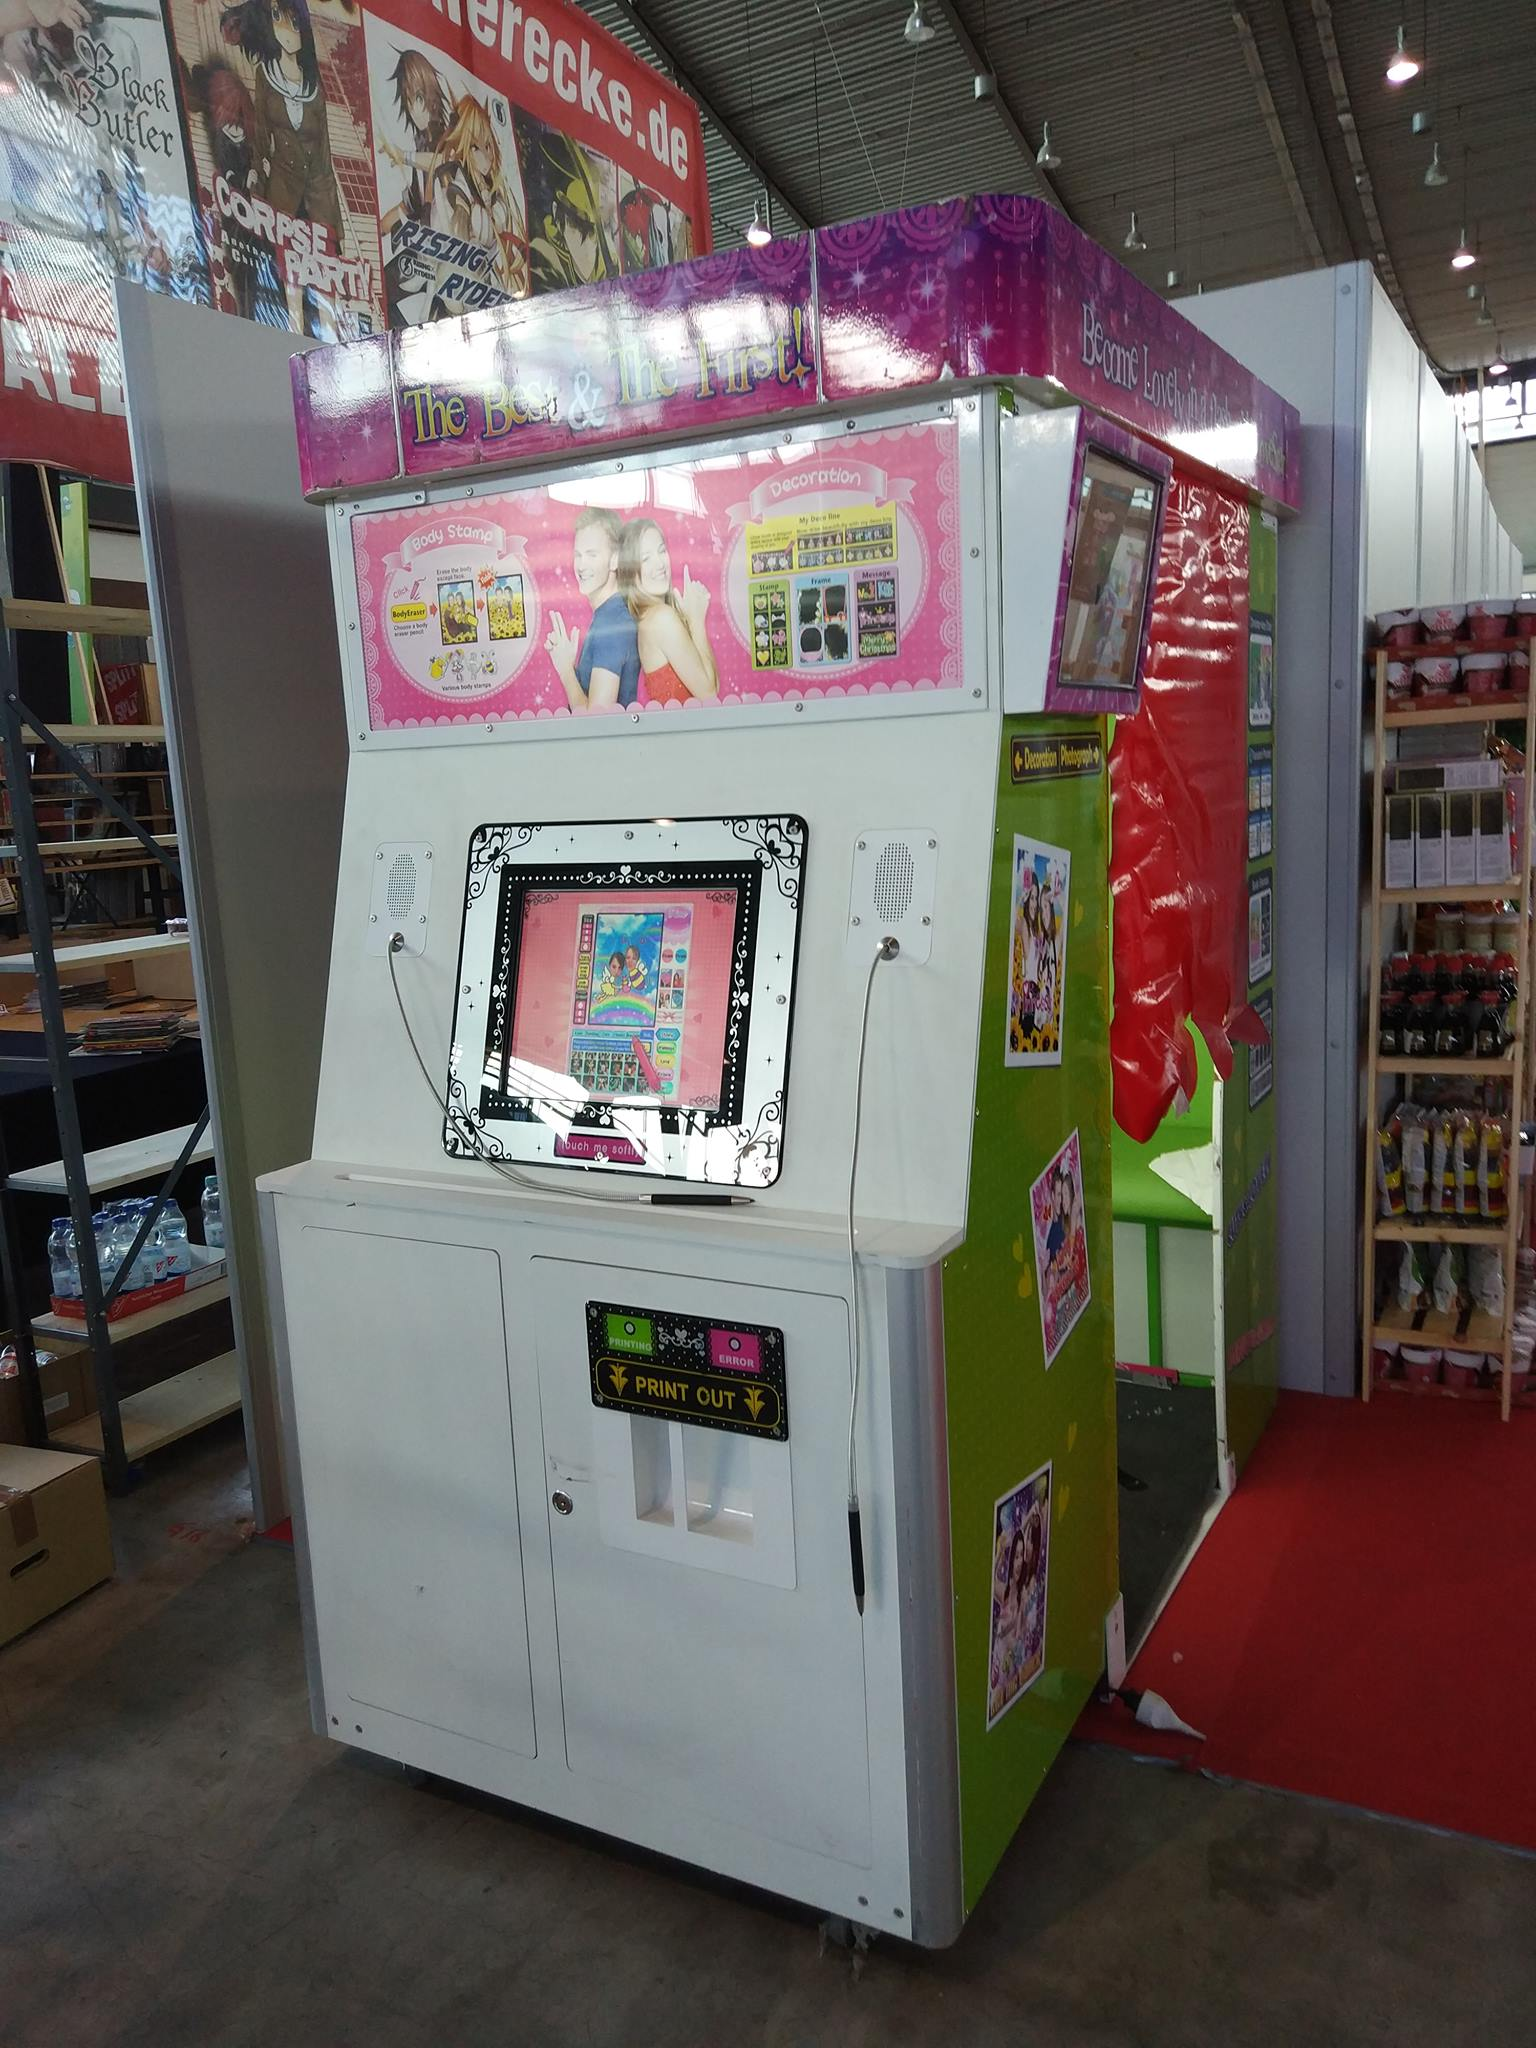 Machine Purikura en convention